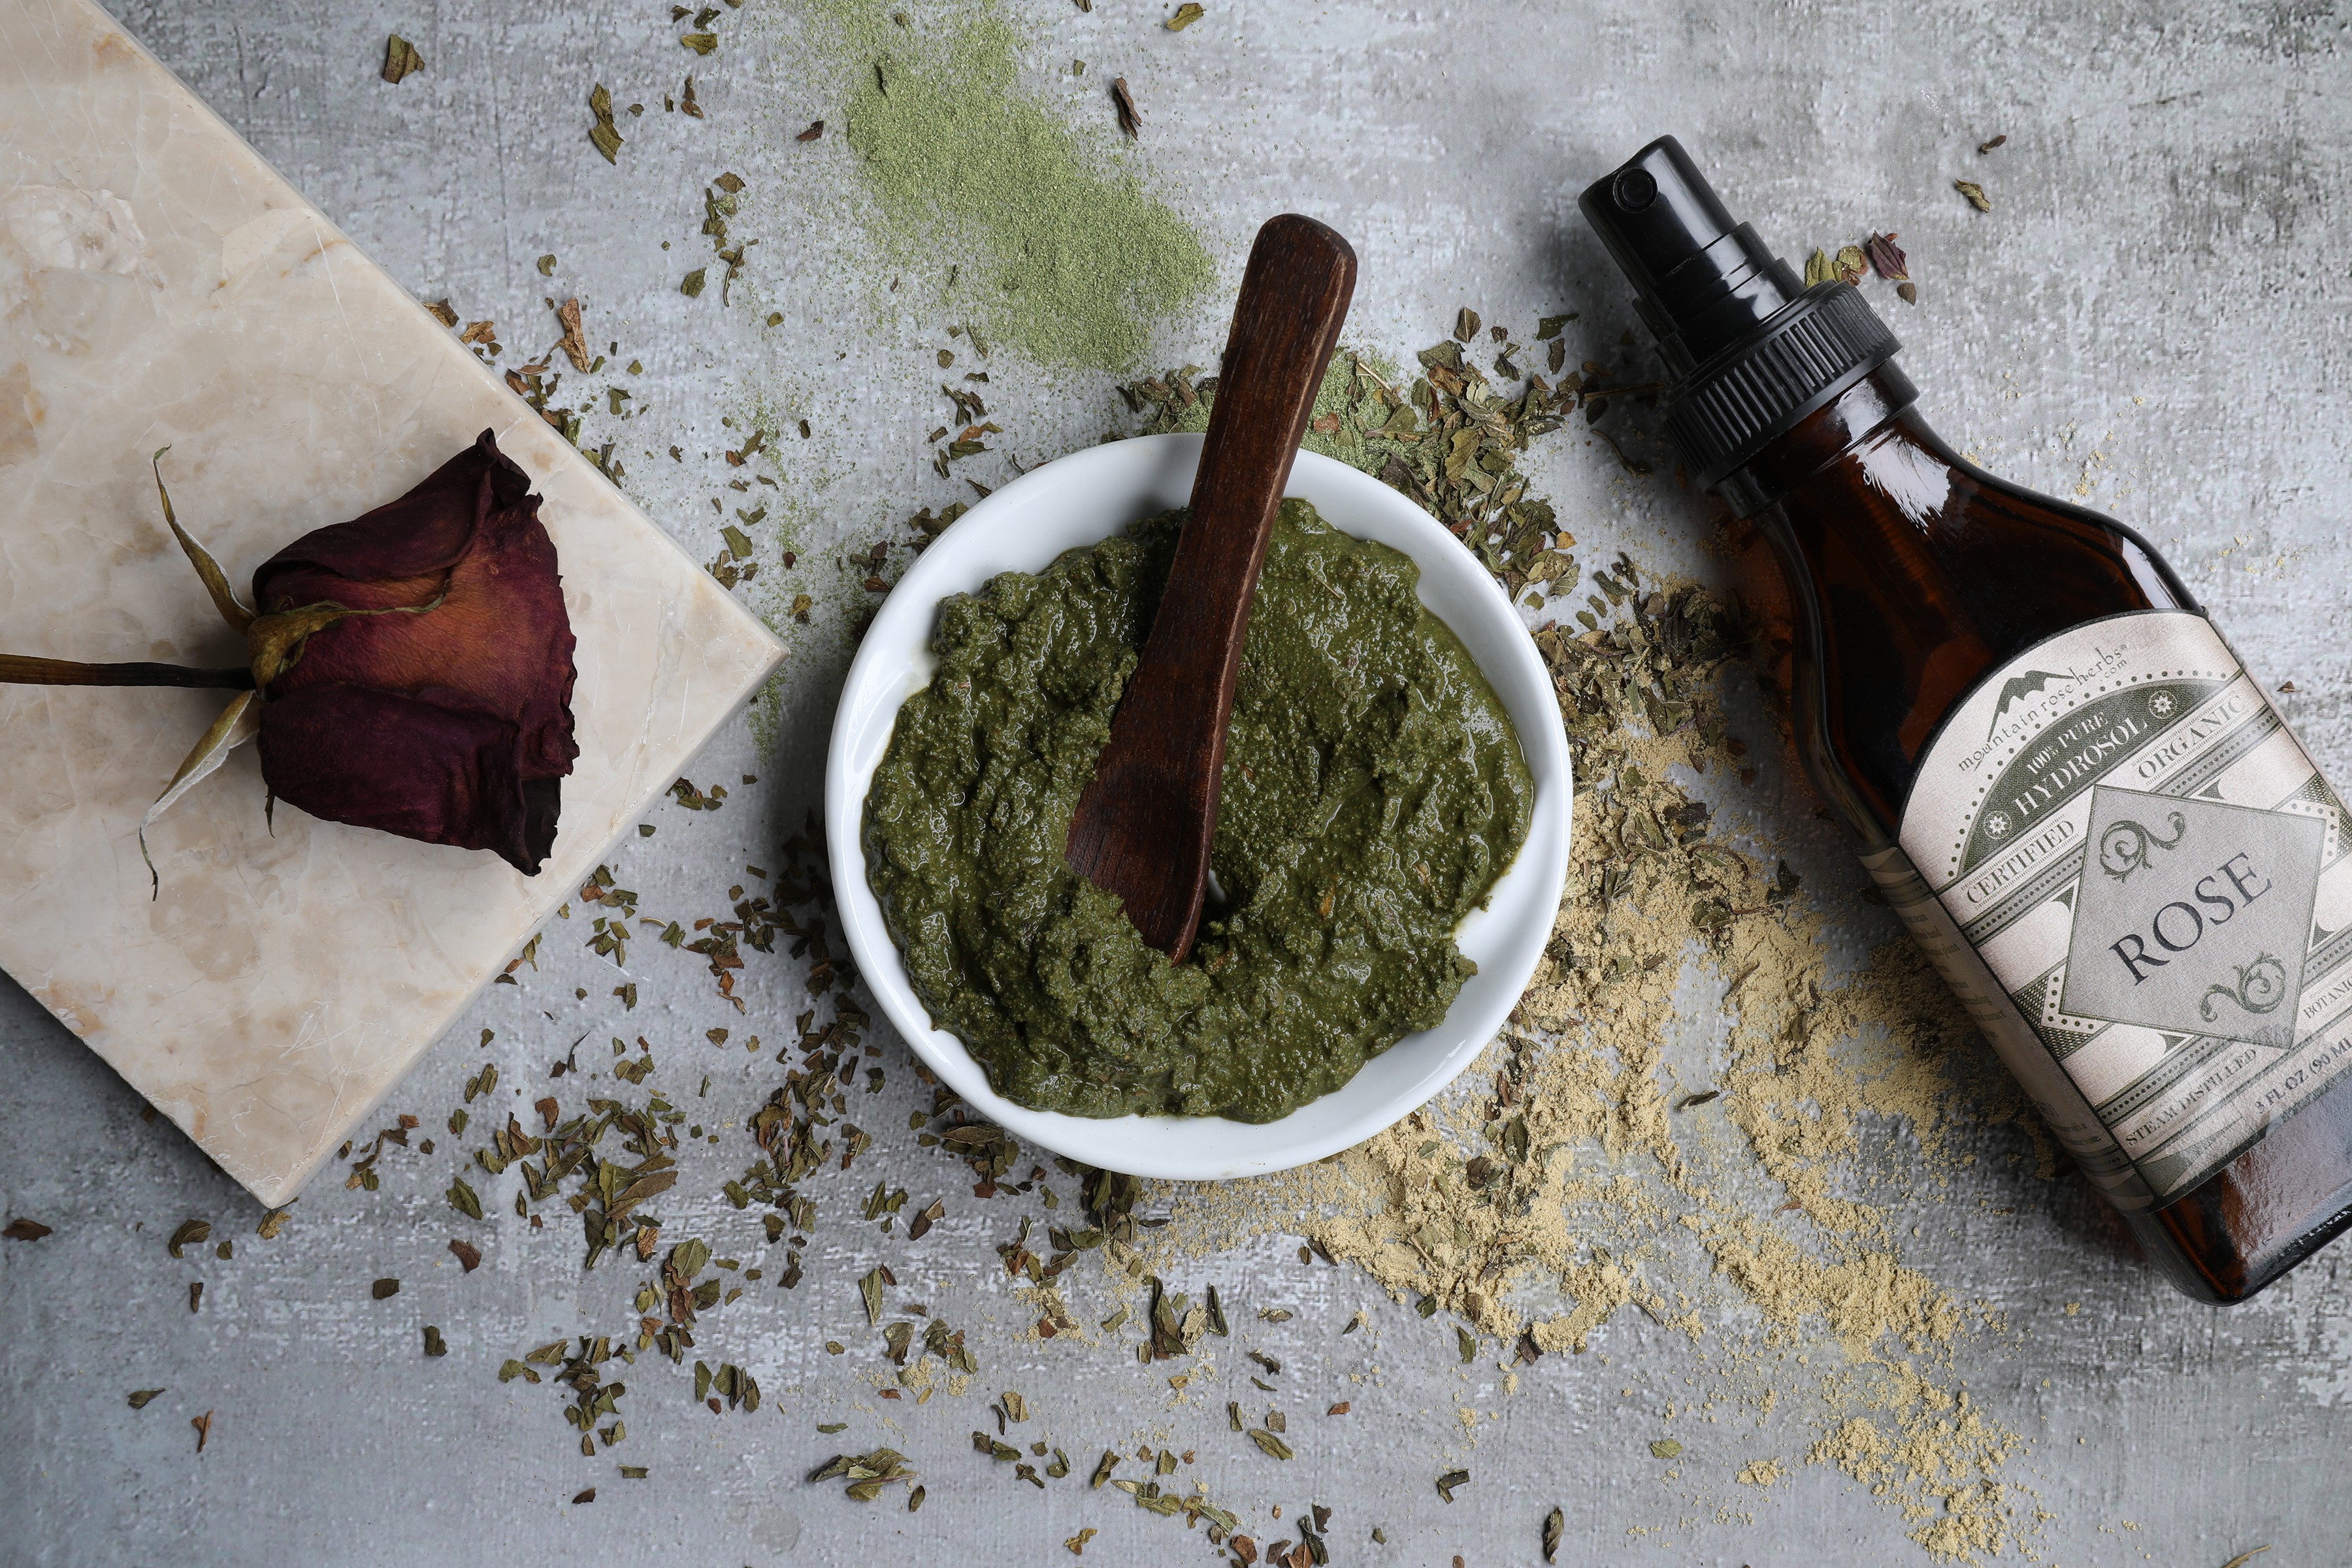 White bowl filled with green paste with displayed botanicals and a bottle of hydrosol.